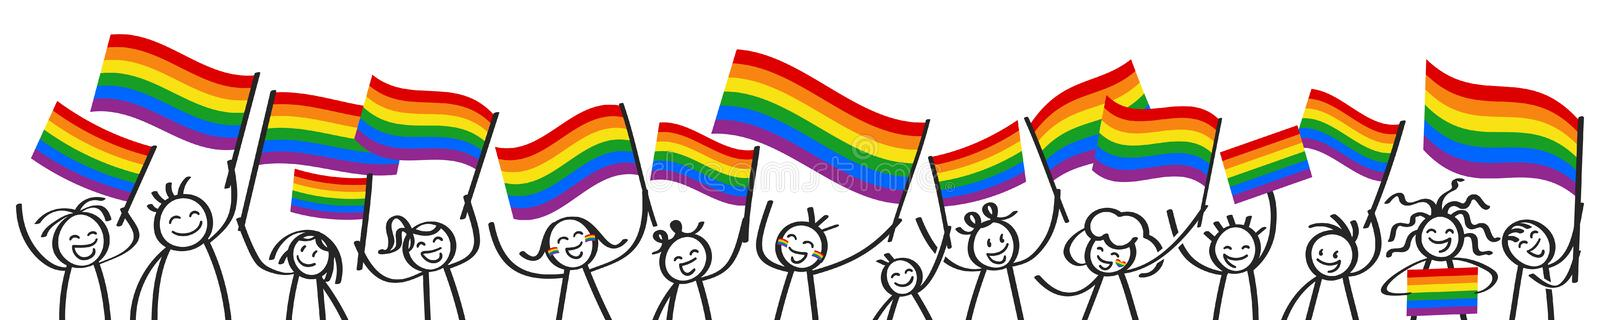 Cheering crowd of happy stick figures with rainbow flags, LGBTQ supporters smiling and waving colorful flags royalty free illustration